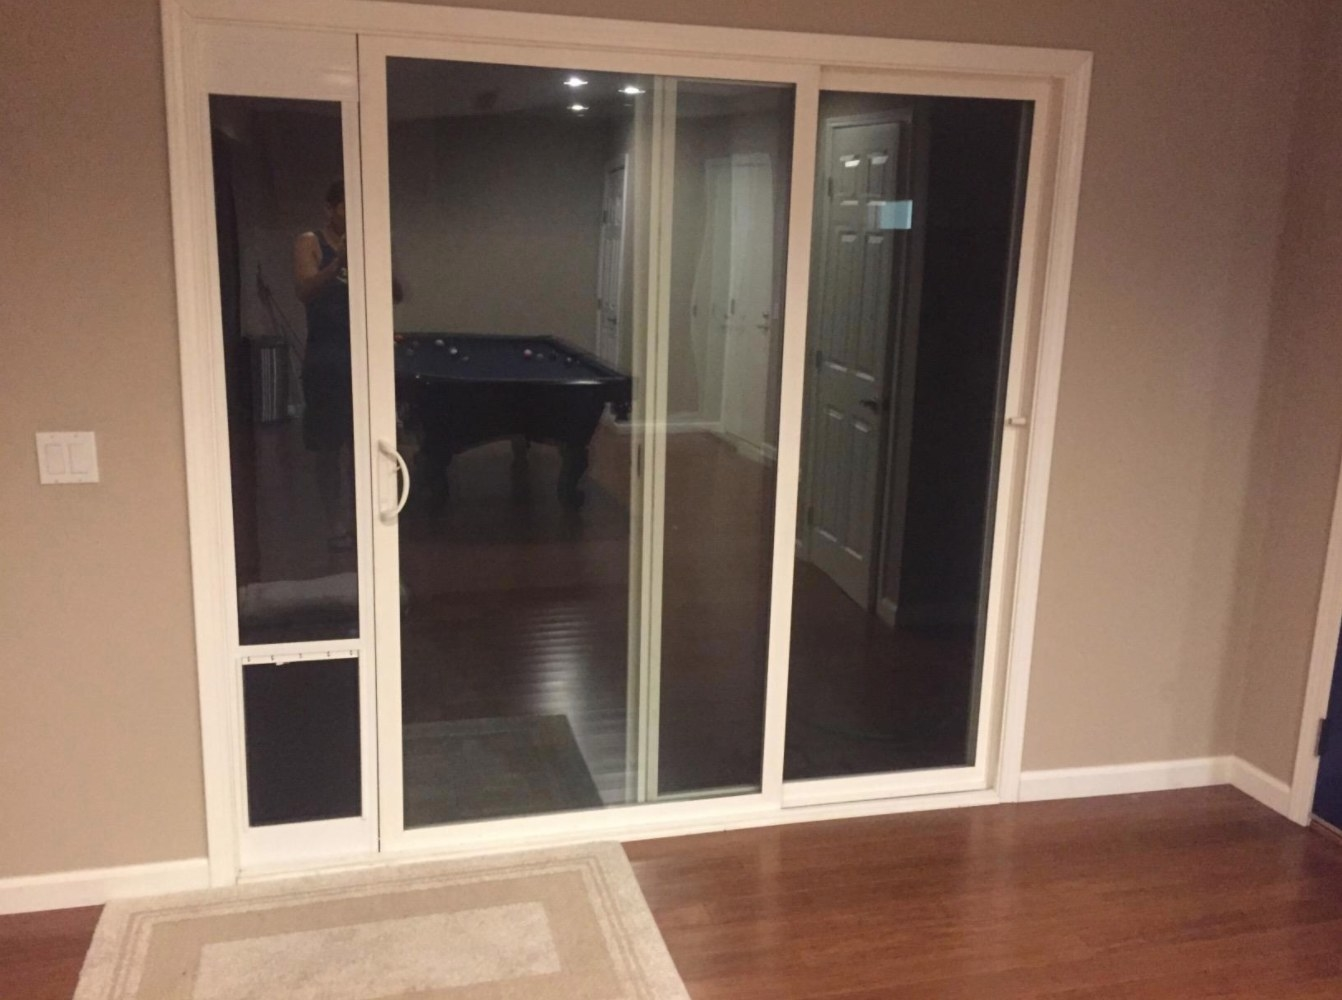 The patio sliding glass door for pets